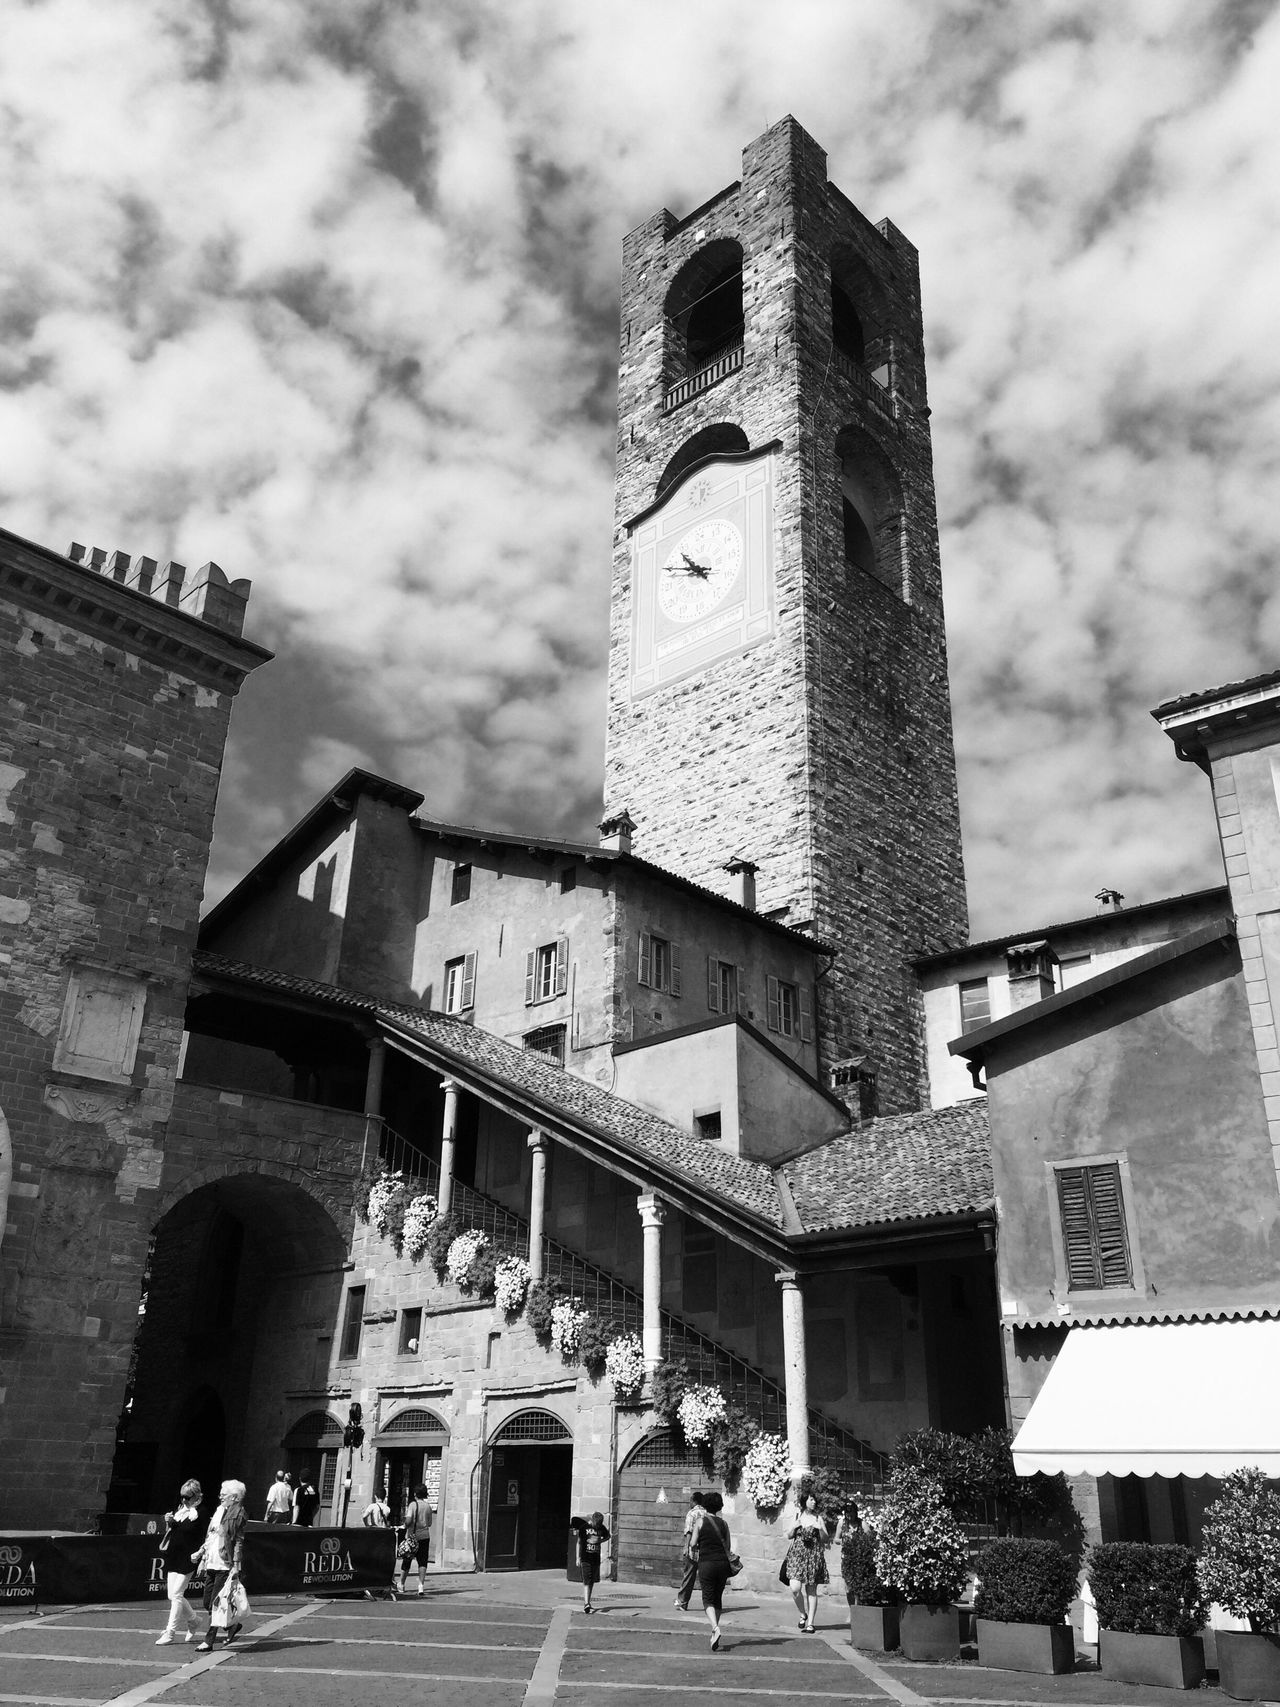 Bergamo Italy Market Holidays July Relax Urban Lifestyle Architecture Church Square Main Square Monochrome Photography